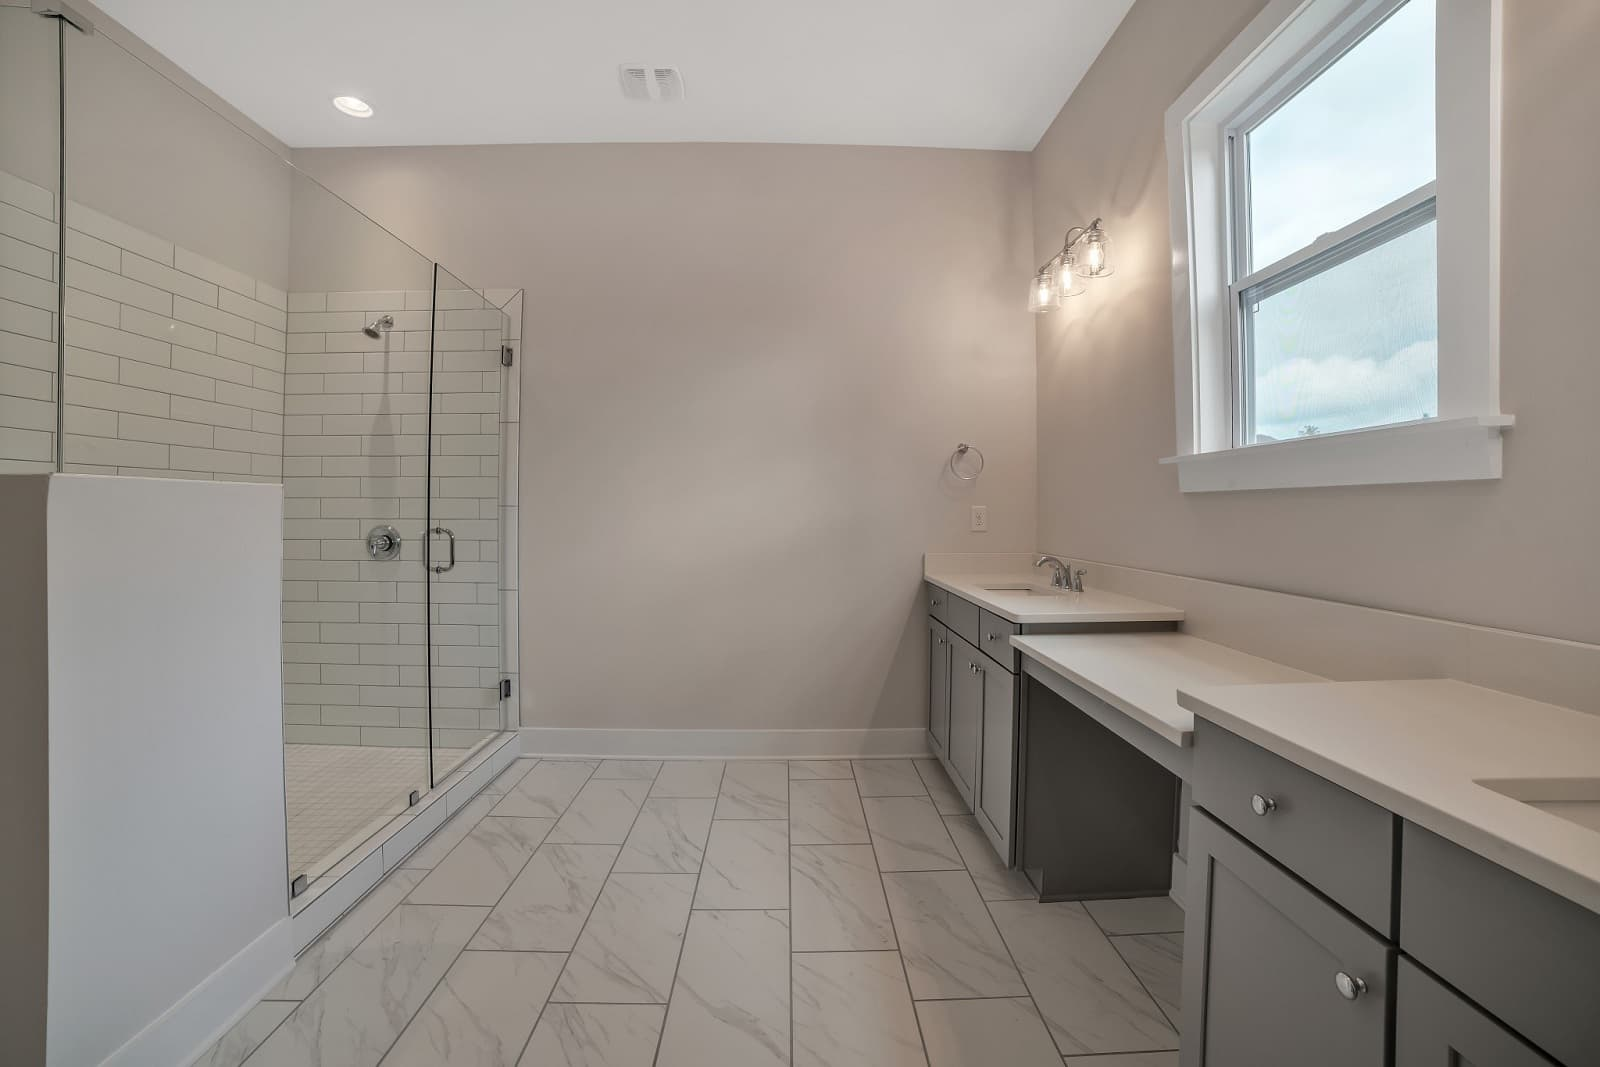 Real Estate Photography in Huntersville - NC - USA - Bathroom View